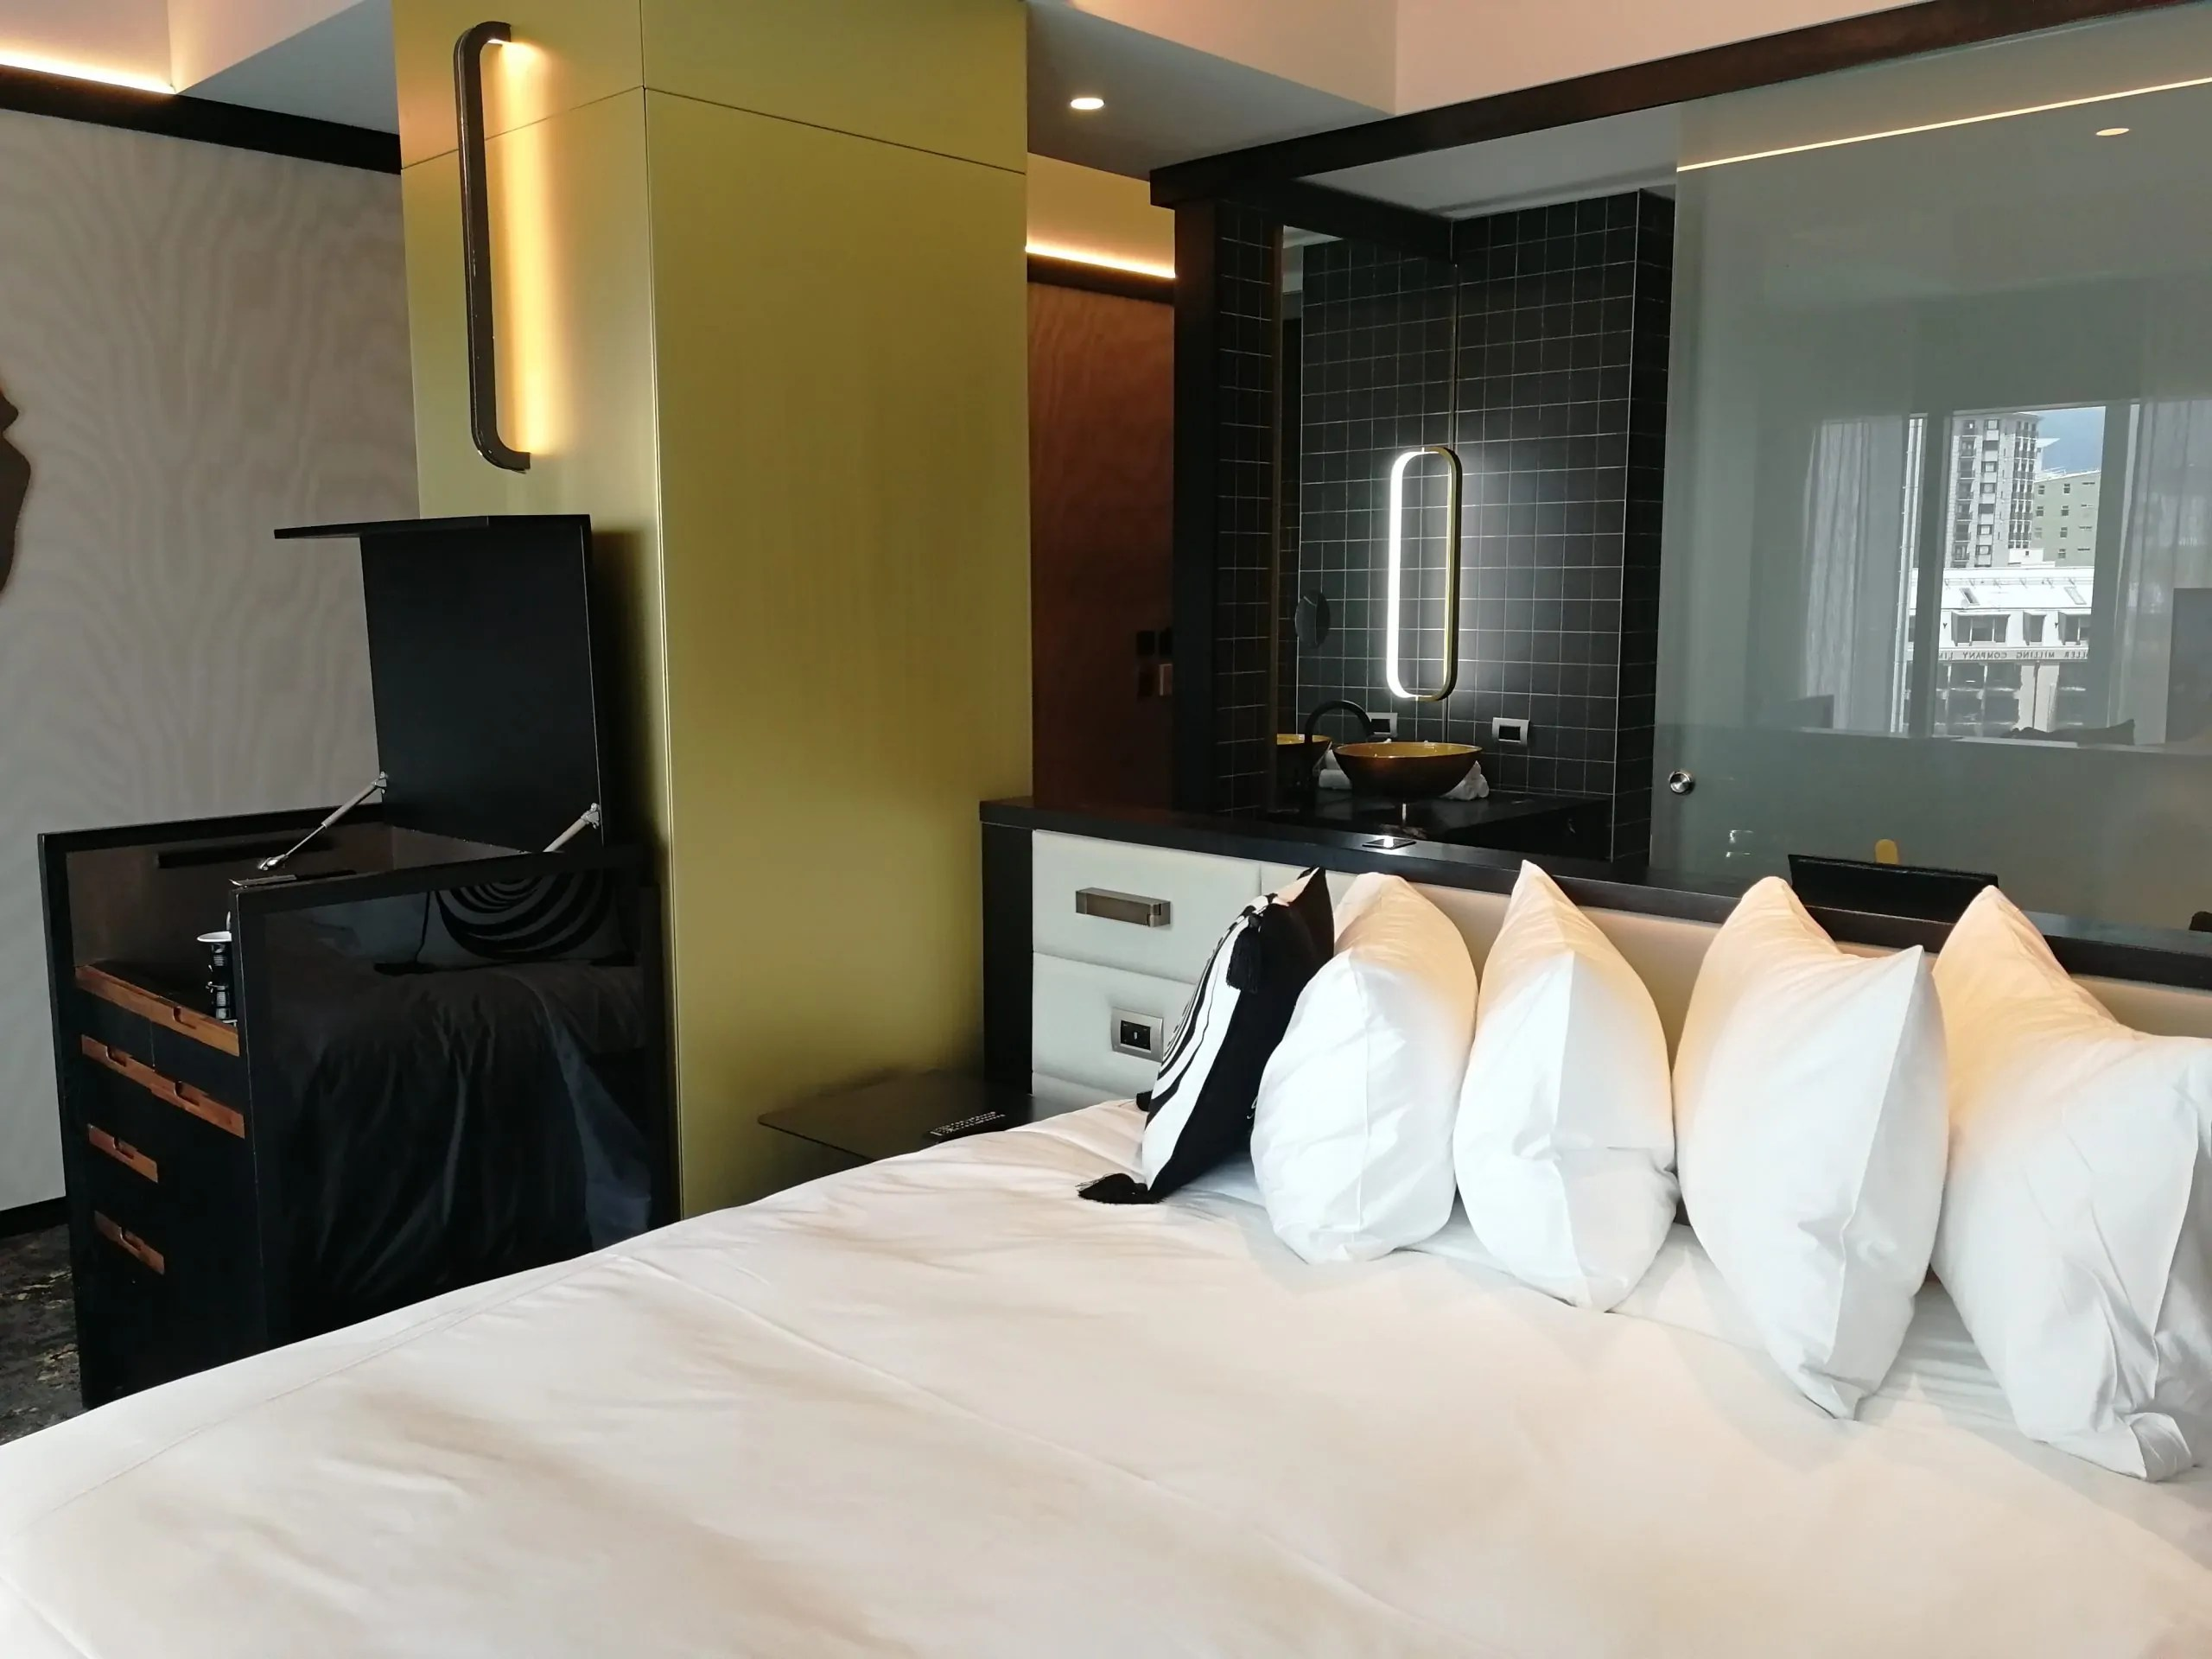 Unser tolles Hotel in Auckland